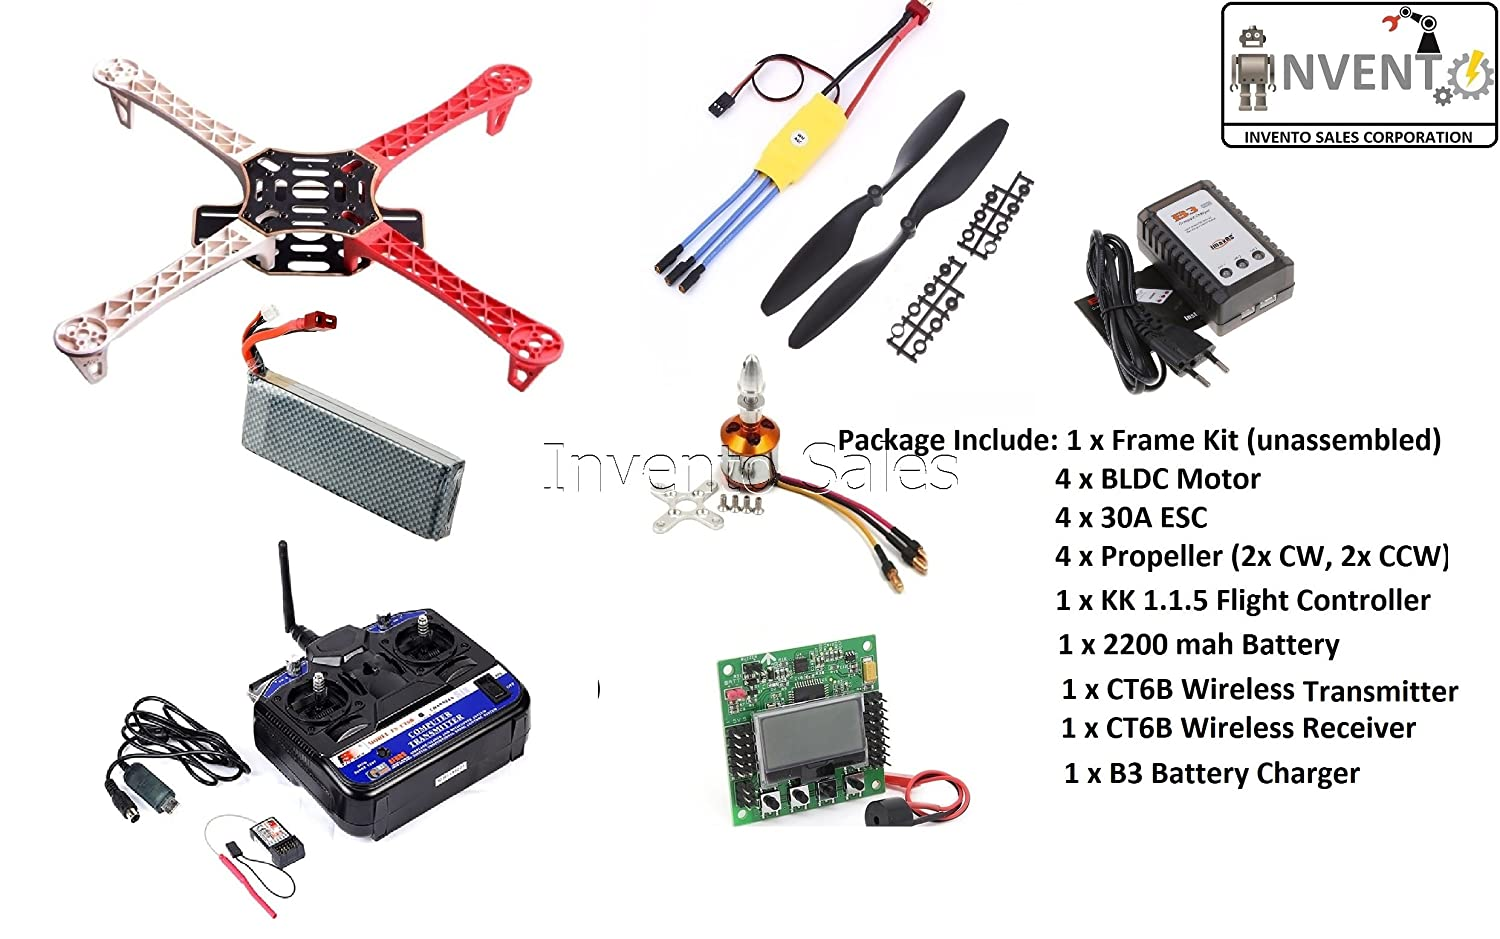 Invento Invnt 7 F450 Quadcopter Complete Diy Kit 1400kv Bldc Kk215 Orangerx Kk2 Wiring Diagram 30a Esc 1045 Propeller Unassembled Industrial Scientific